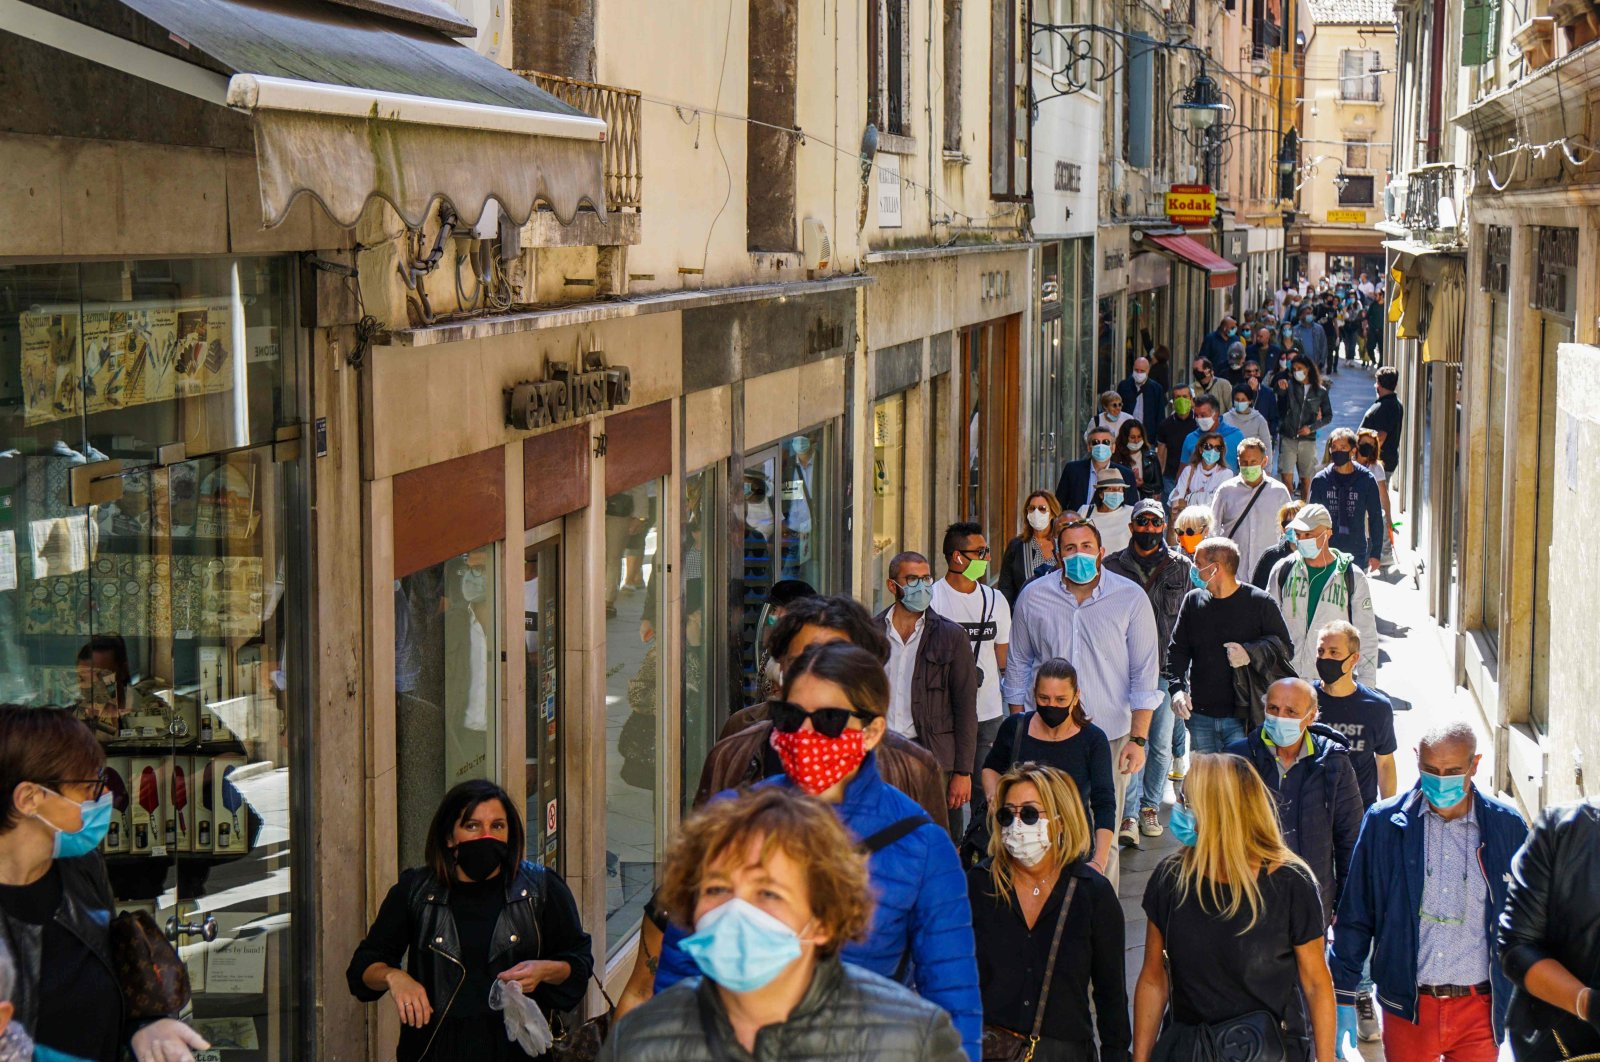 A general view in a busy street occupied by stores in Venice, Italy, May 4, 2020. (AFP Photo)